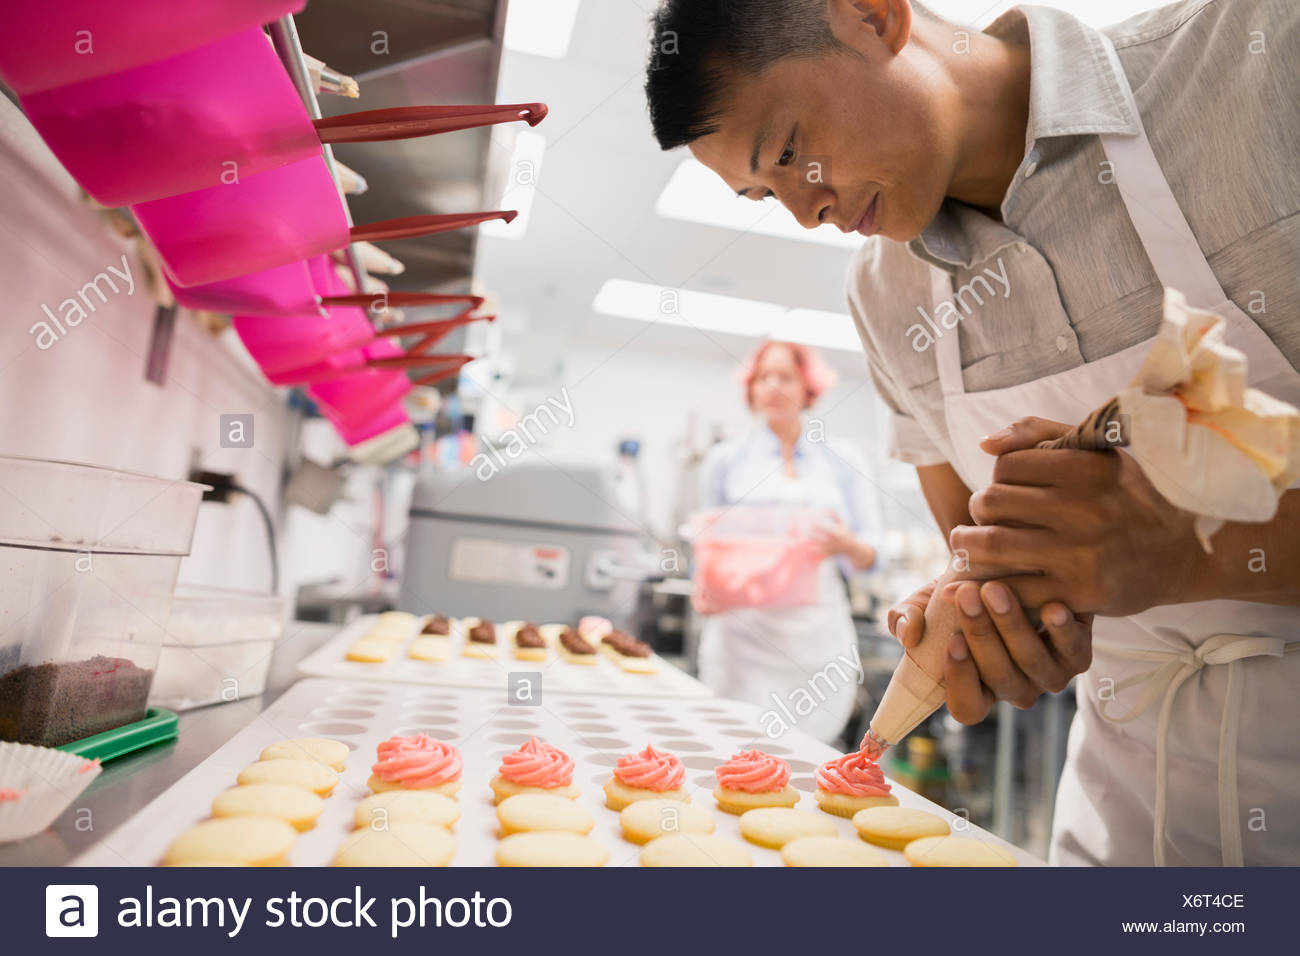 Tuyauterie pâtissier cookies pink icing cuisine commerciale Photo Stock